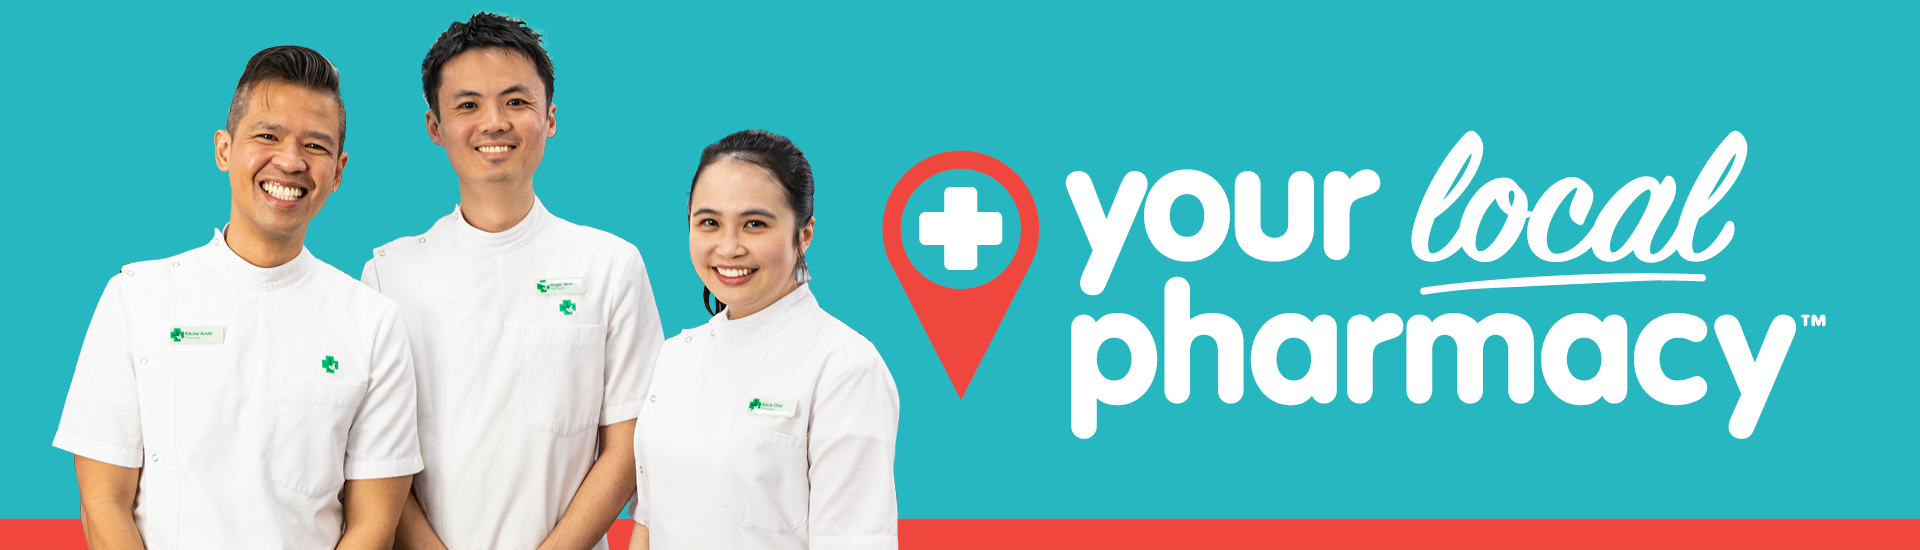 your local pharmacy banner image